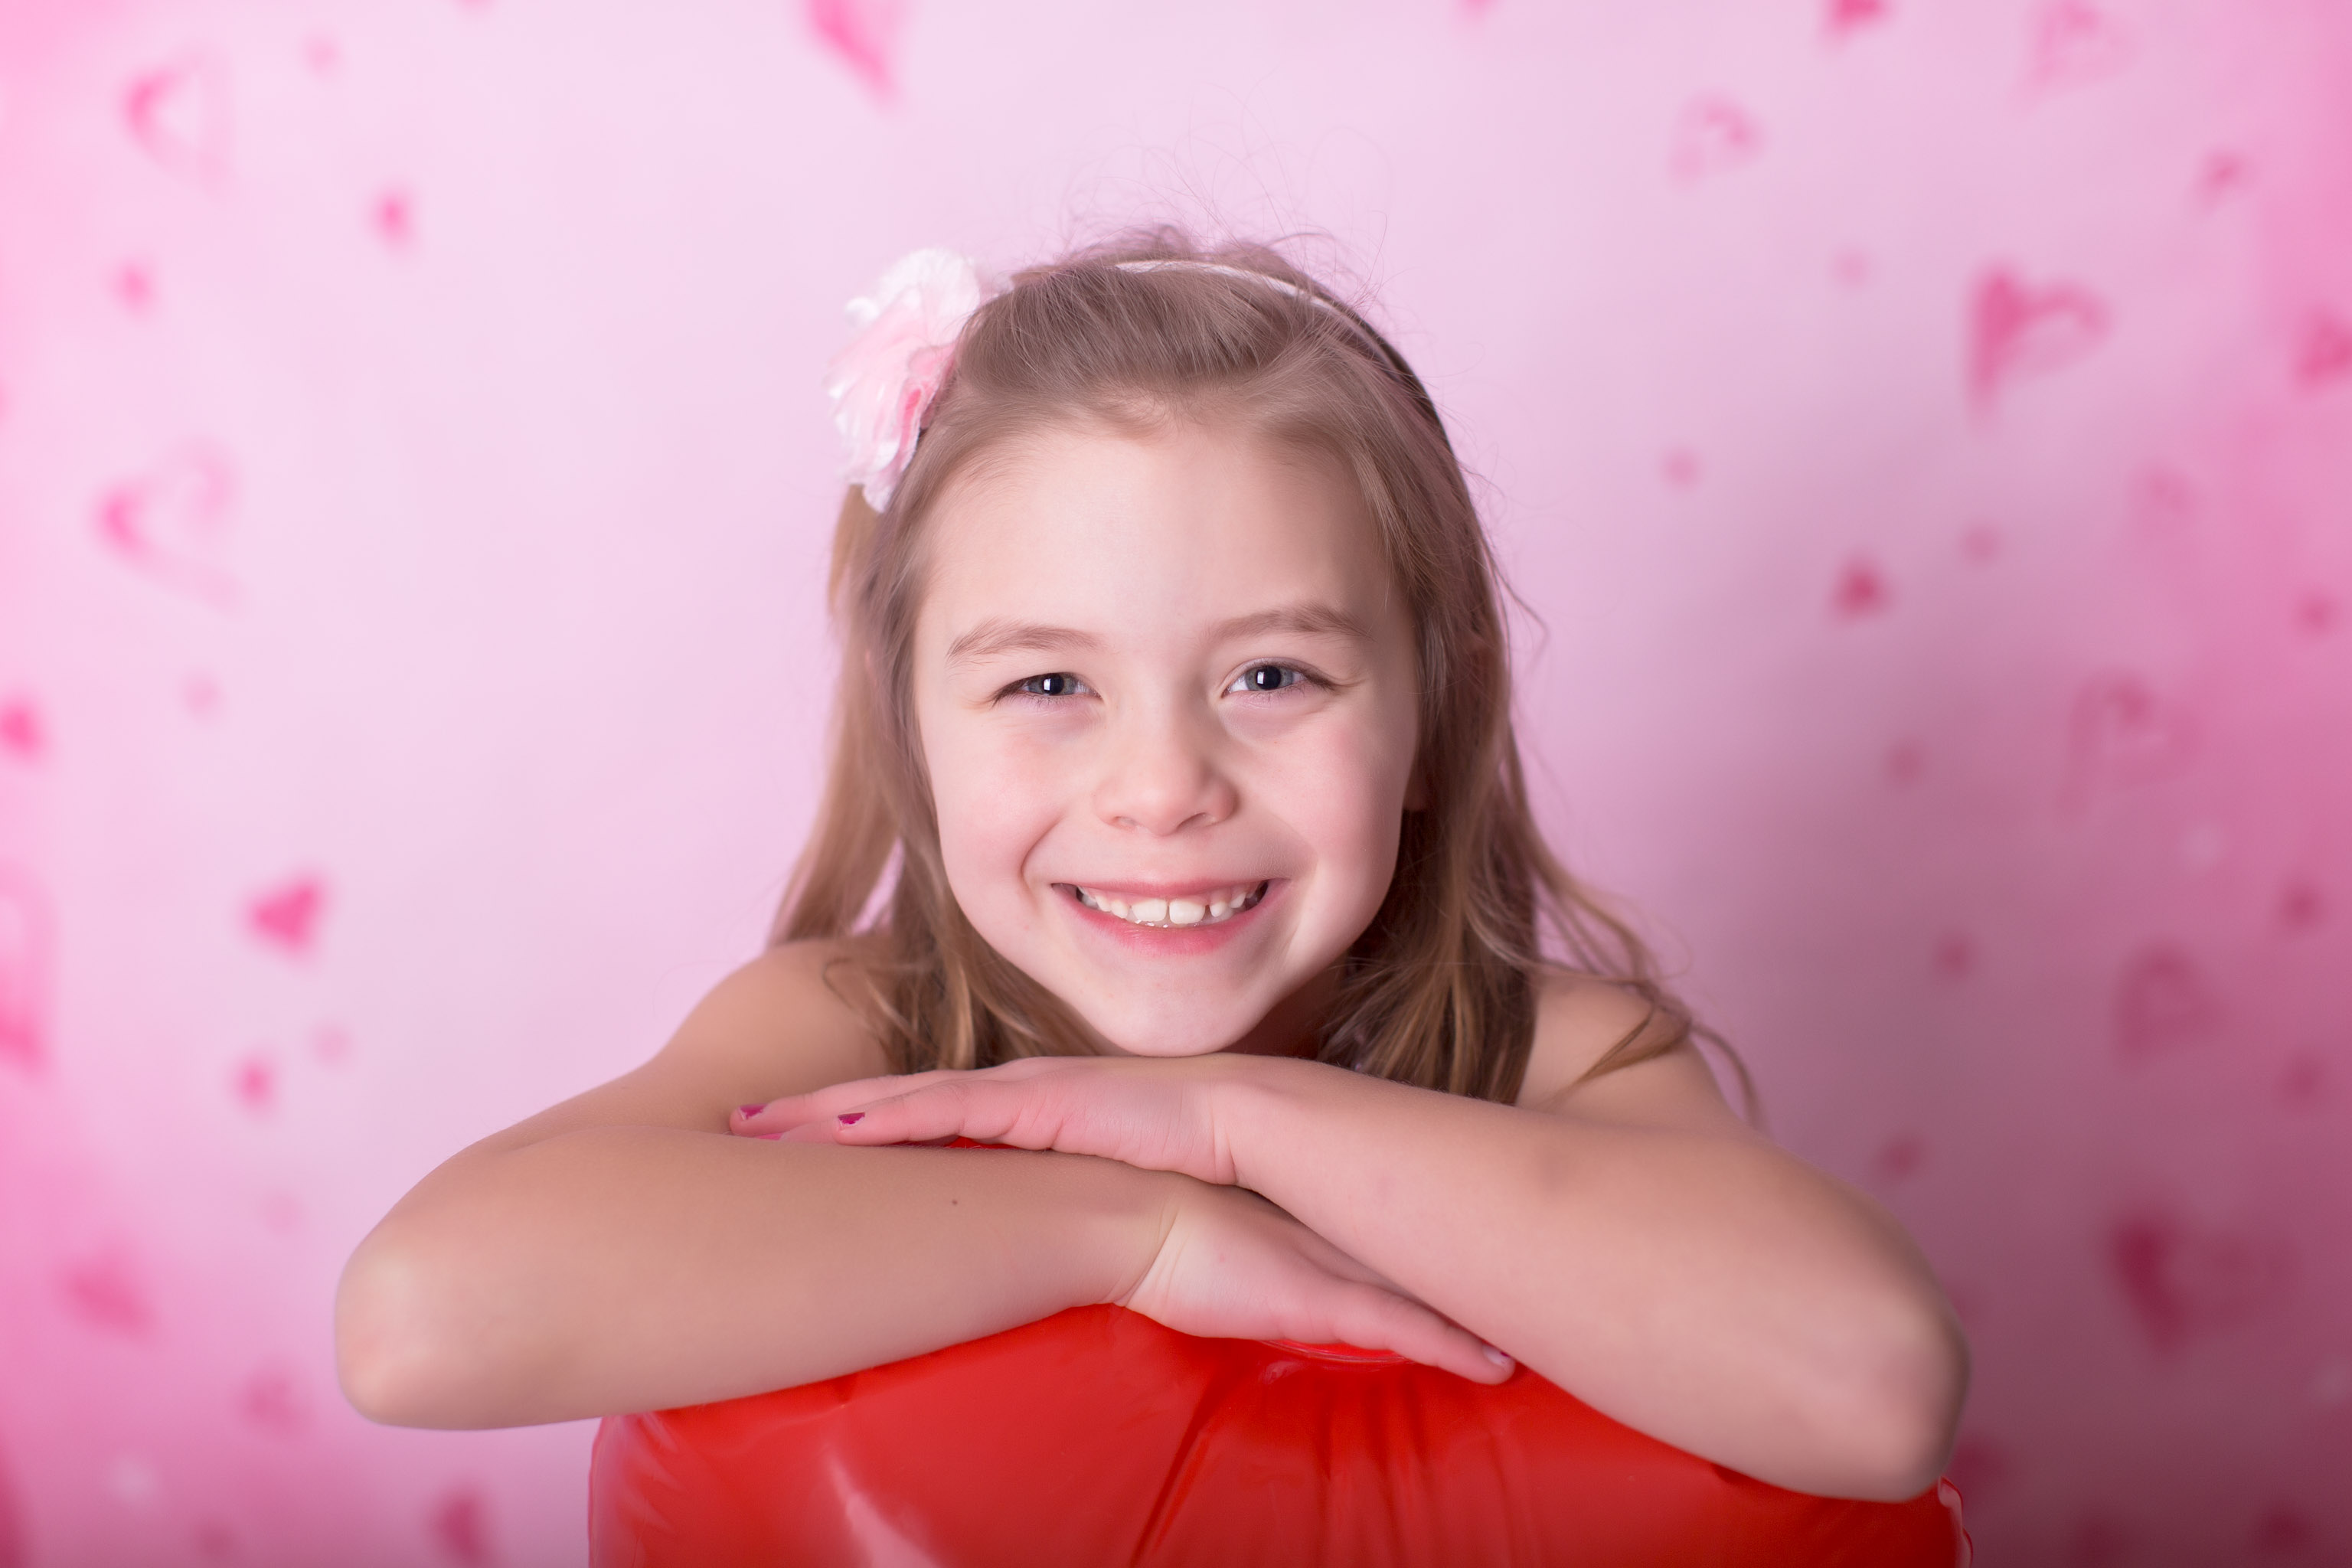 Close up of a girl posing for valentine's day session